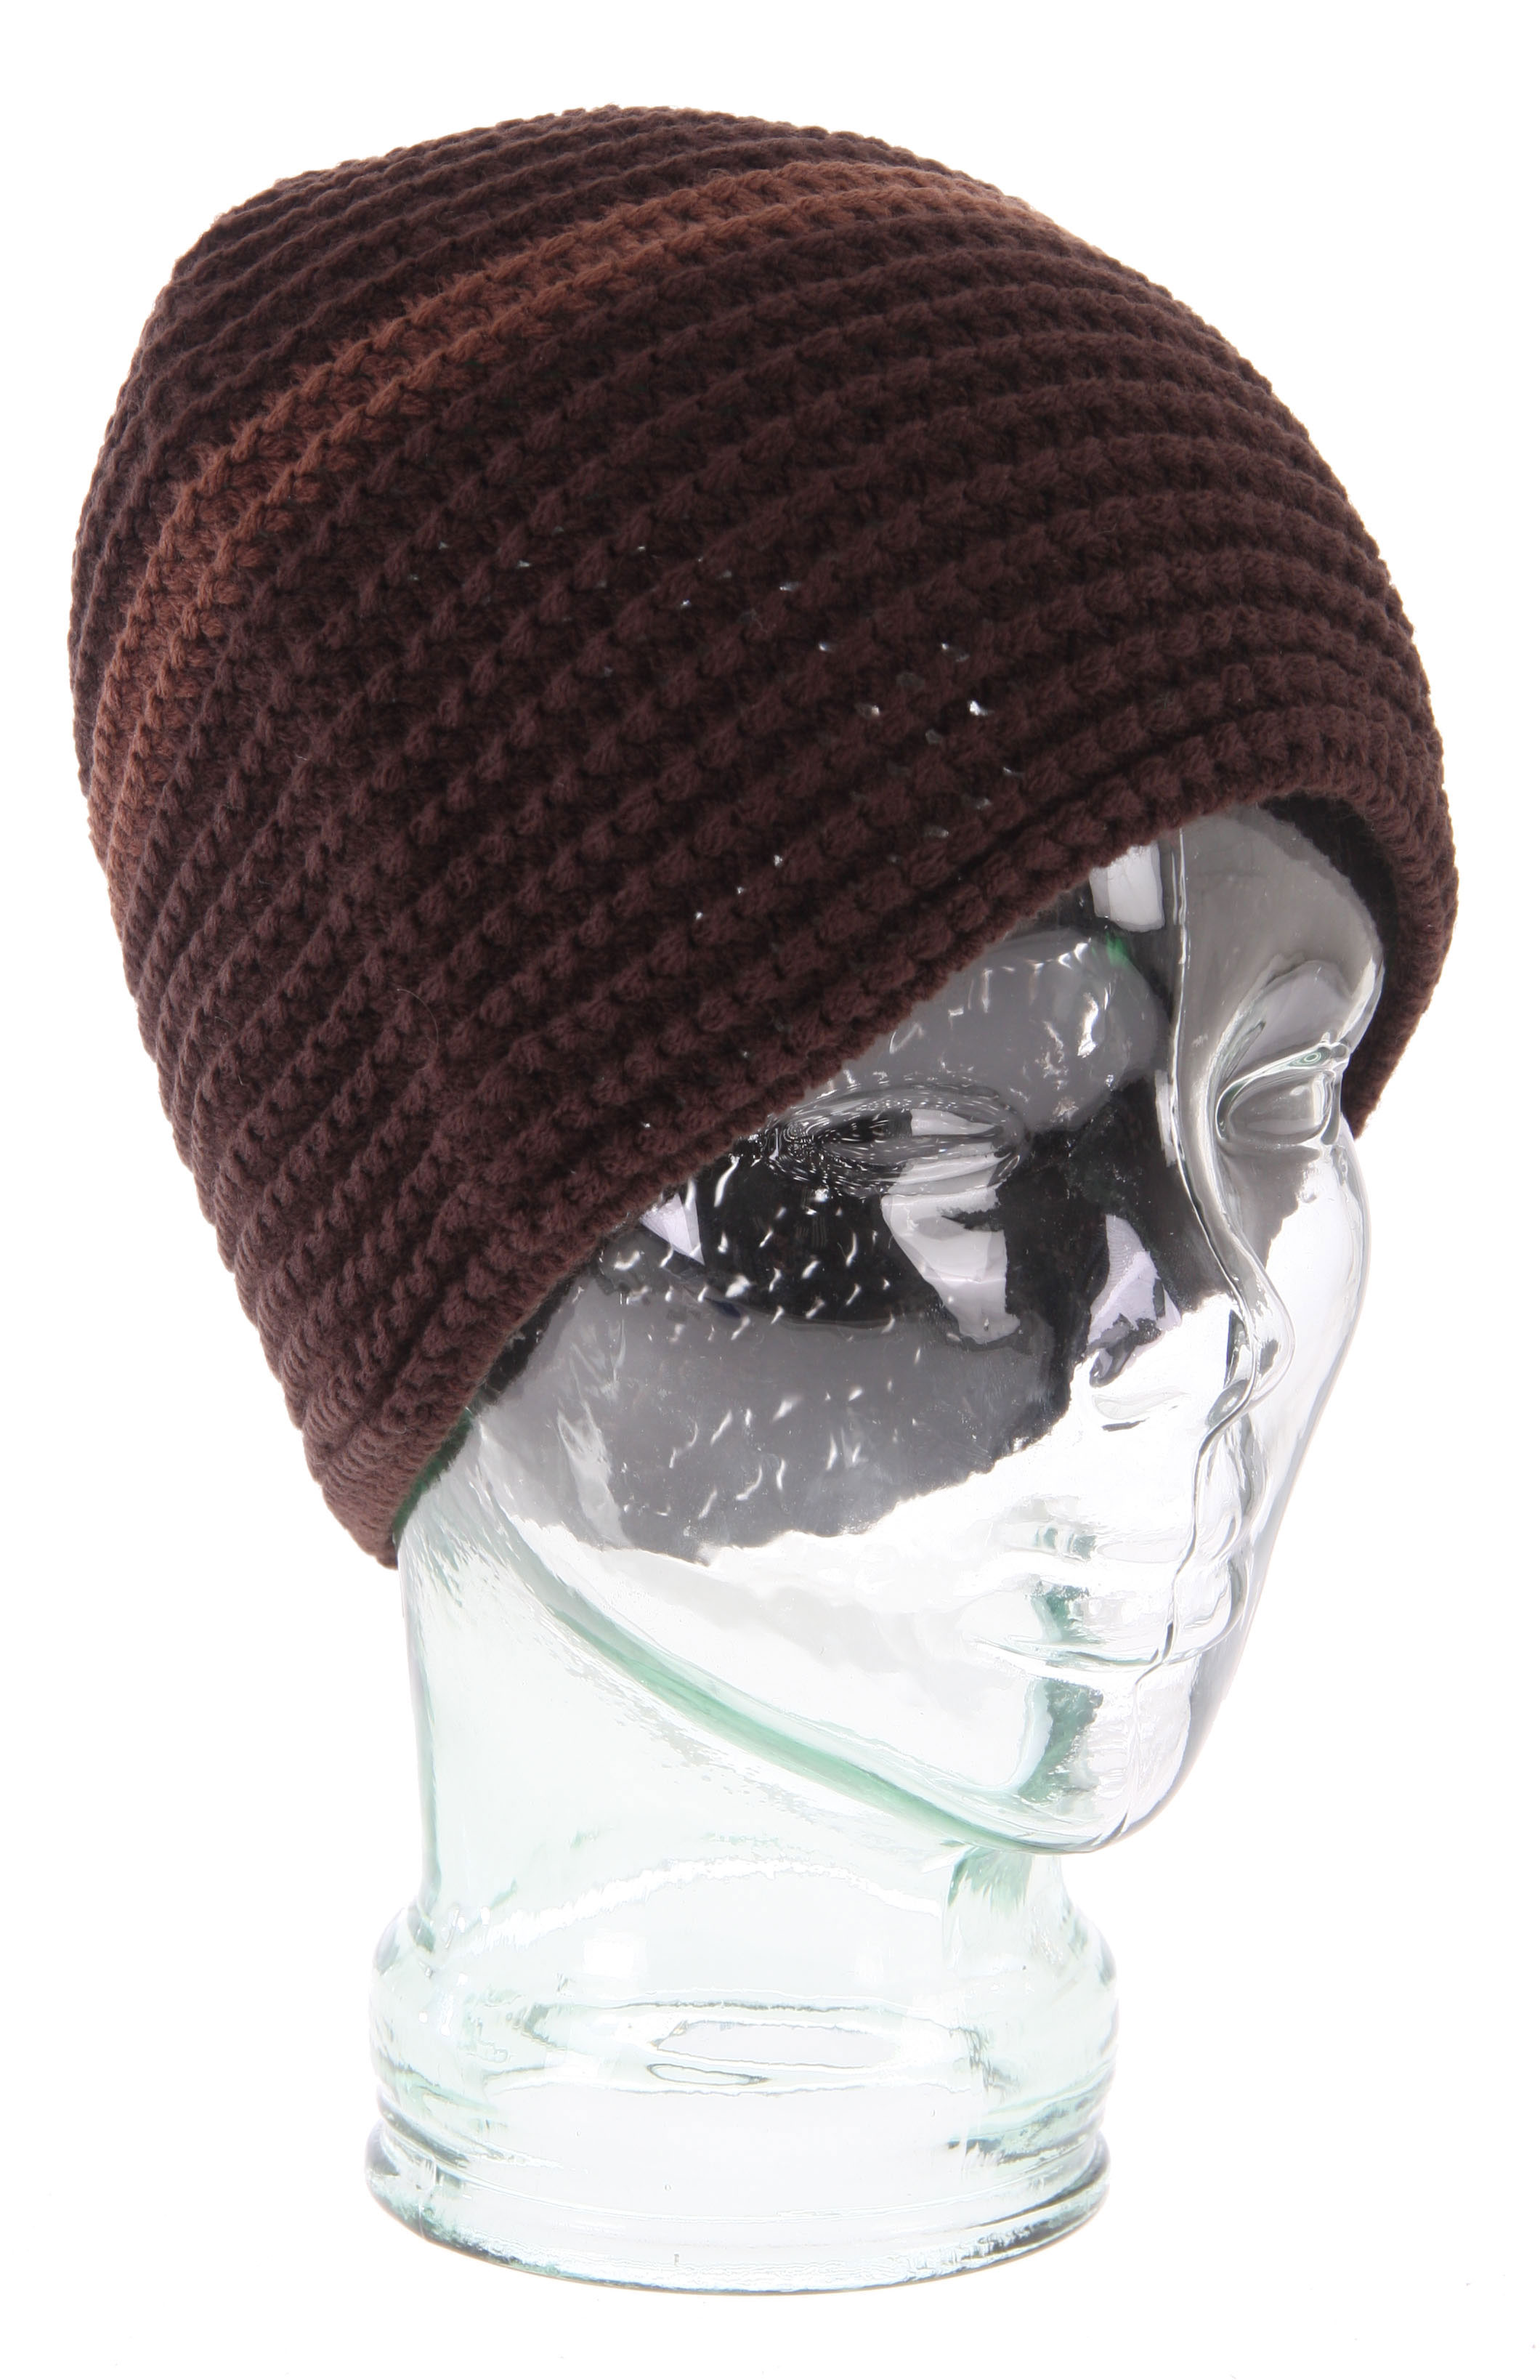 Planet Earth Trademark Beanie is either recycled or uses renewable components. Green living is good living. The shape of this beanie a traditional one with tight stitching and quality edging. Planet Earth Trademark Beanie sells fast and is a favorite of Boarders all over.Key Features of Planet Earth Trademark Beanie:Renewable or recycled materials in every piece - $11.95